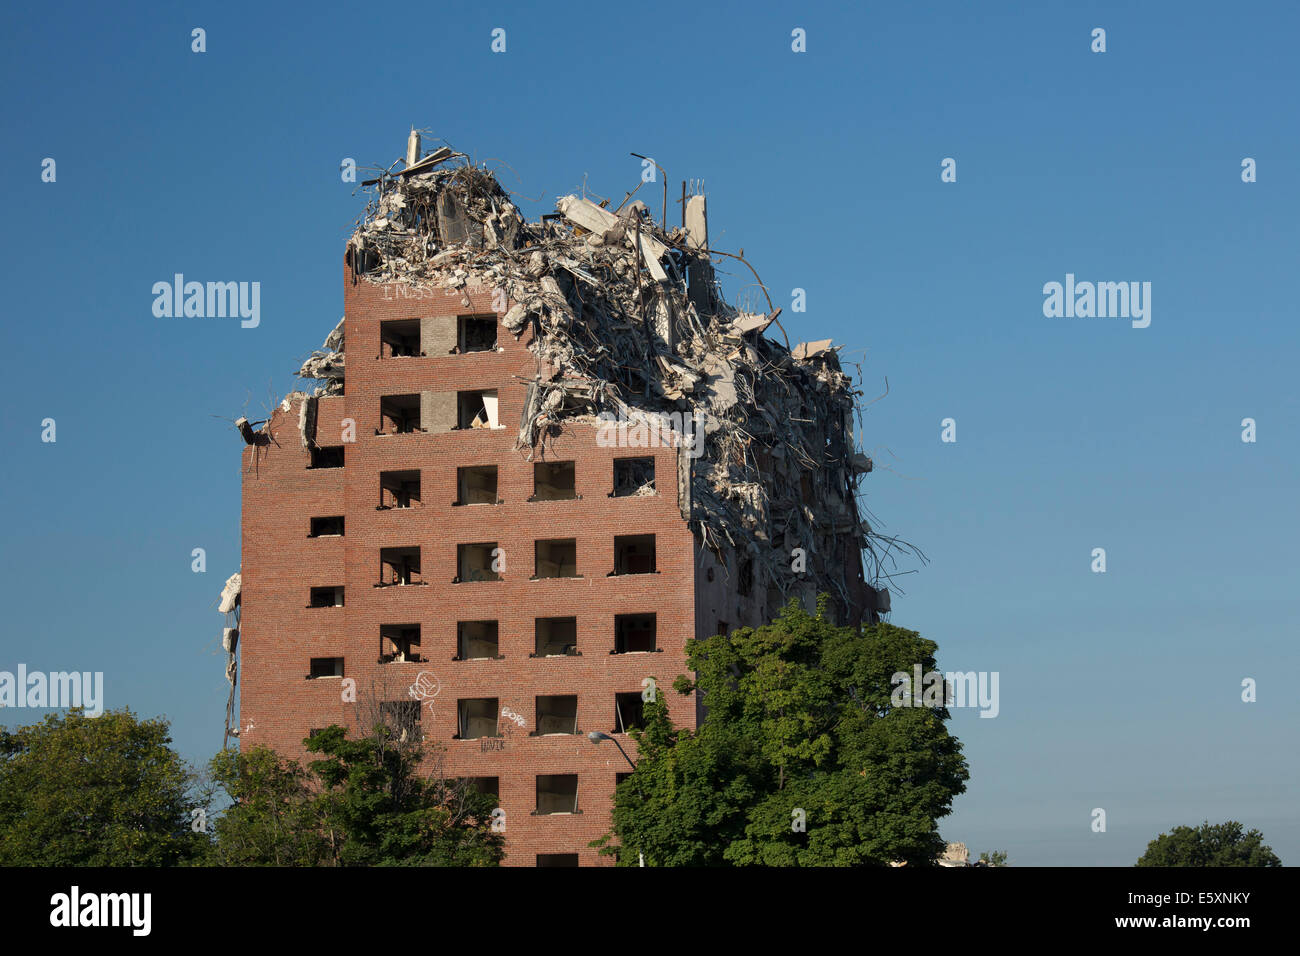 Detroit, Michigan - Demolition of the Brewster-Douglass public Stock